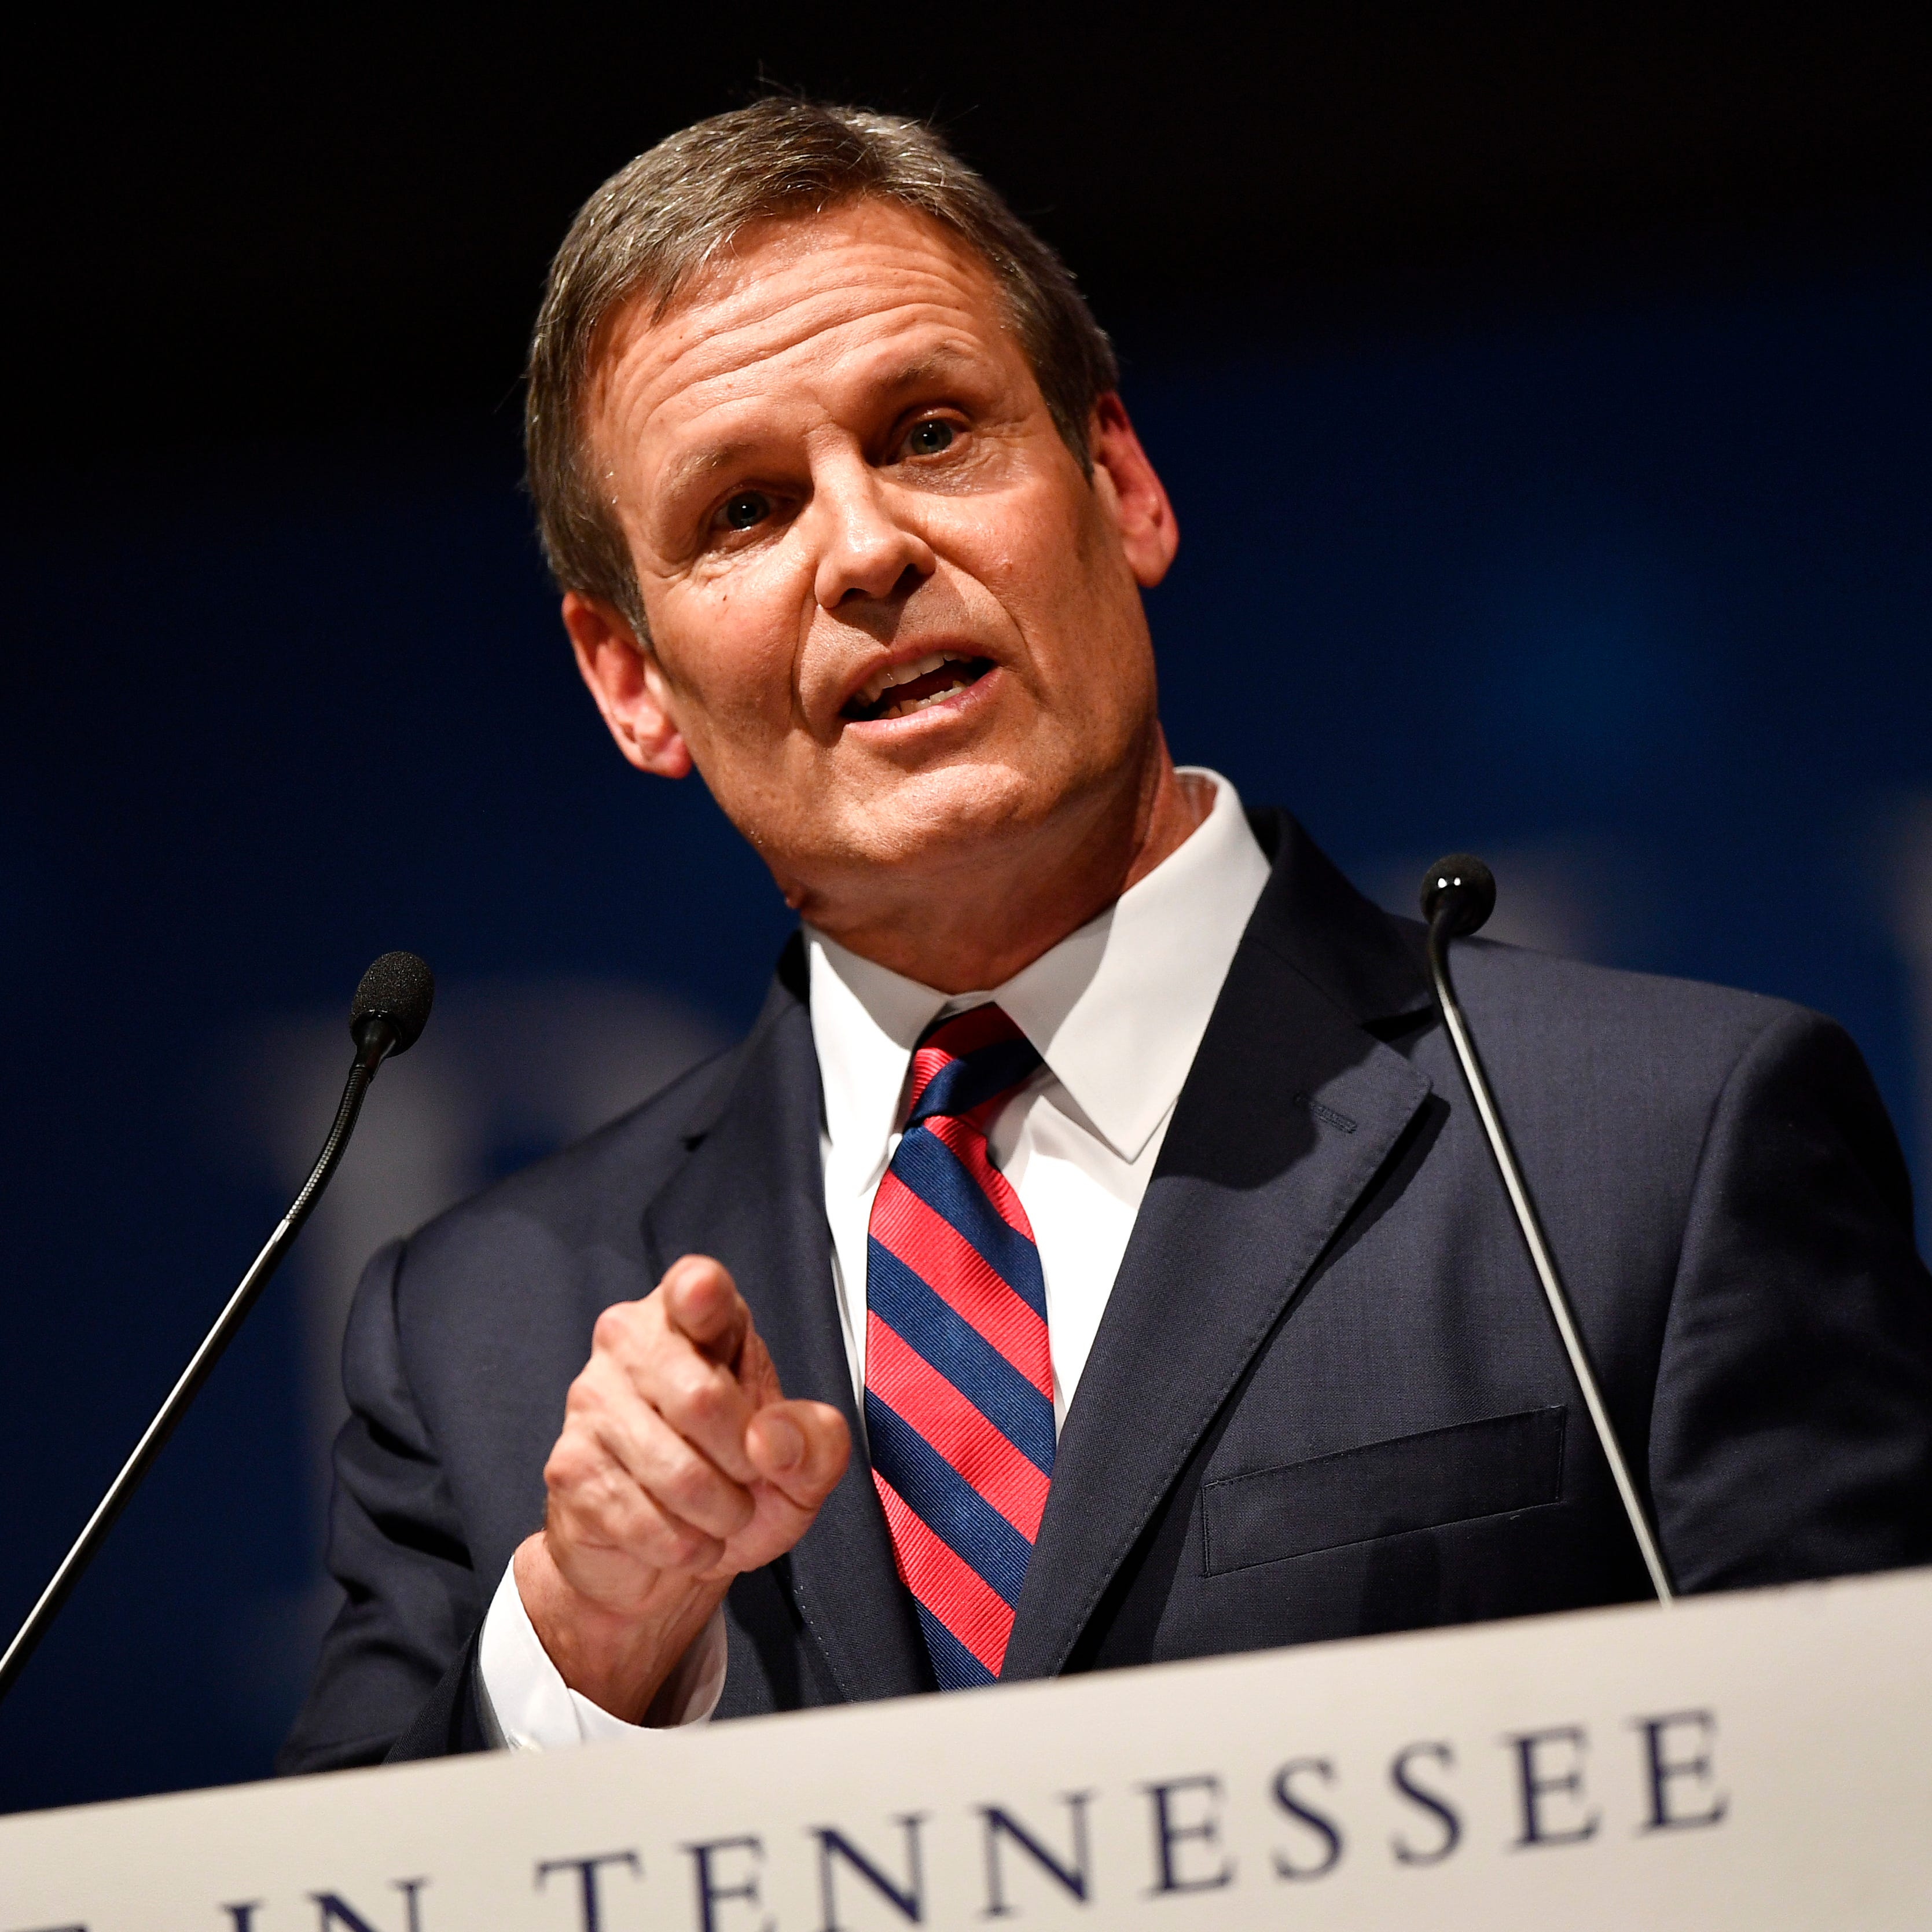 Gov. Bill Lee speaks to the crowd during his inauguration as the 50th governor of Tennessee at War Memorial Auditorium in Nashville, Tenn., Saturday, Jan. 19, 2019.